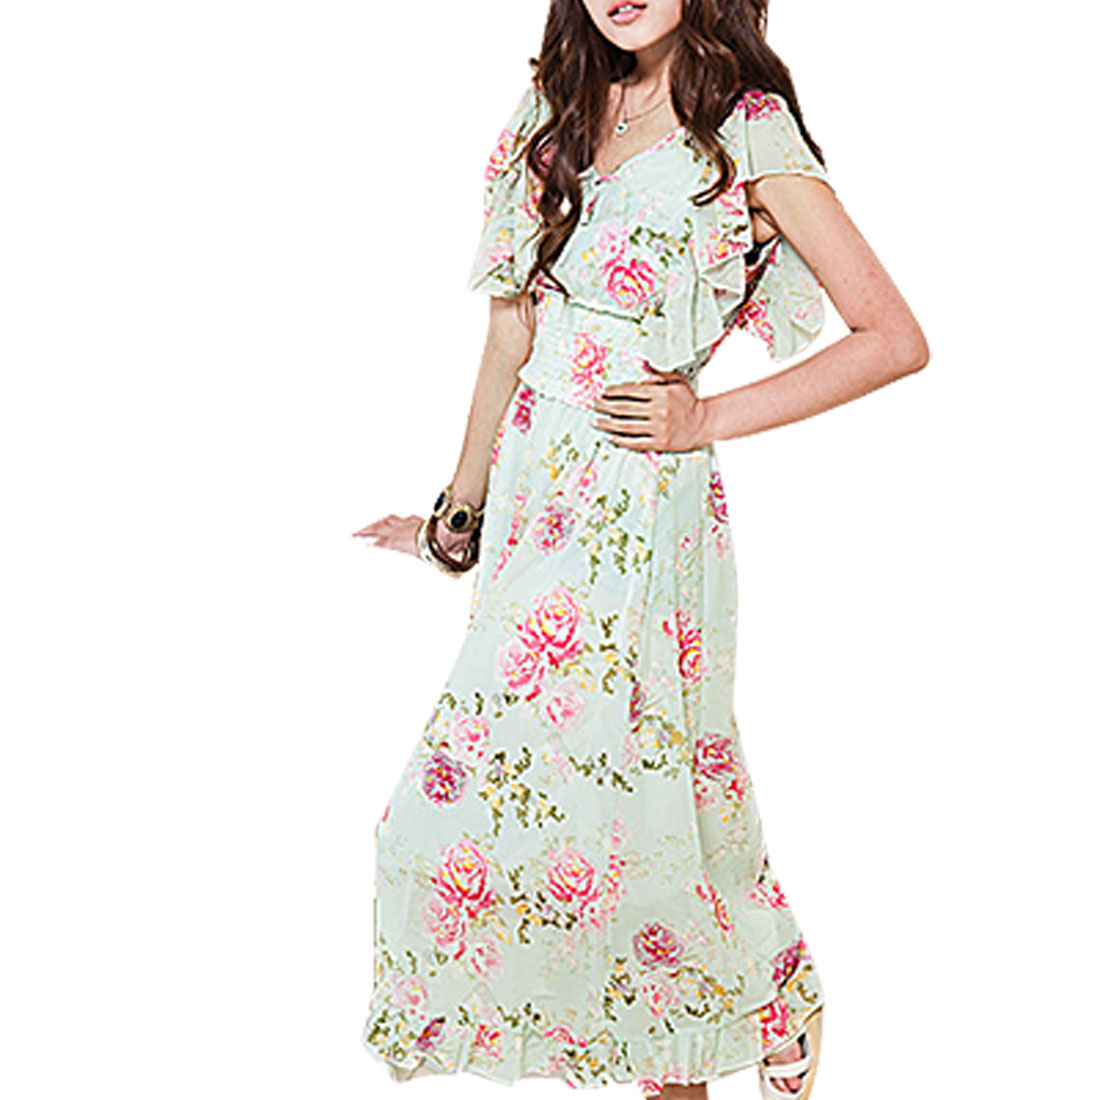 Ladies Flower Pattern Smocked Waist Ruffle Sleeves Dress Pale Green XS